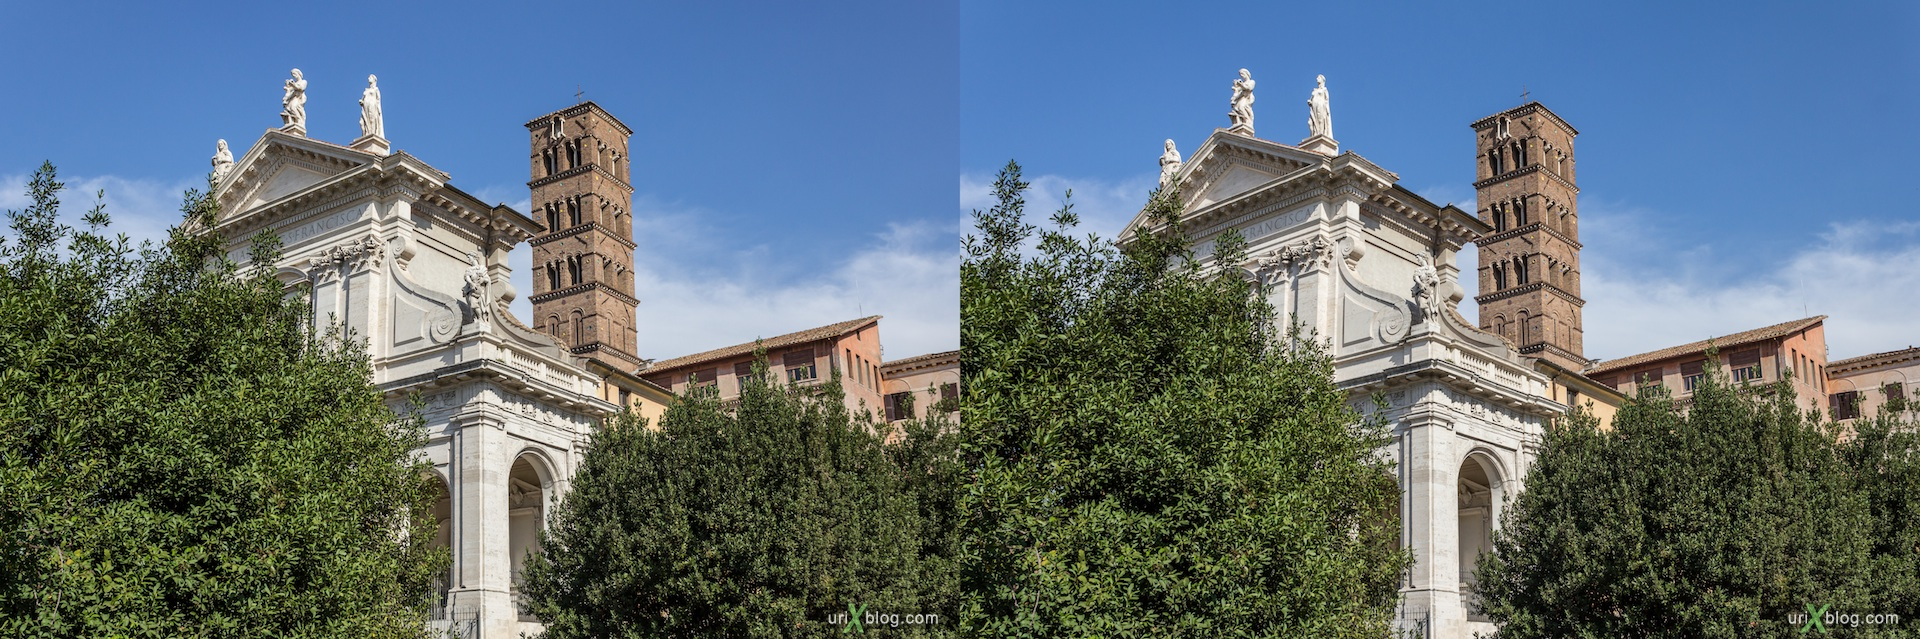 2012, church of Santa Francesca Romana, Rome, Italy, cathedral, monastery, Christianity, Catholicism, 3D, stereo pair, cross-eyed, crossview, cross view stereo pair